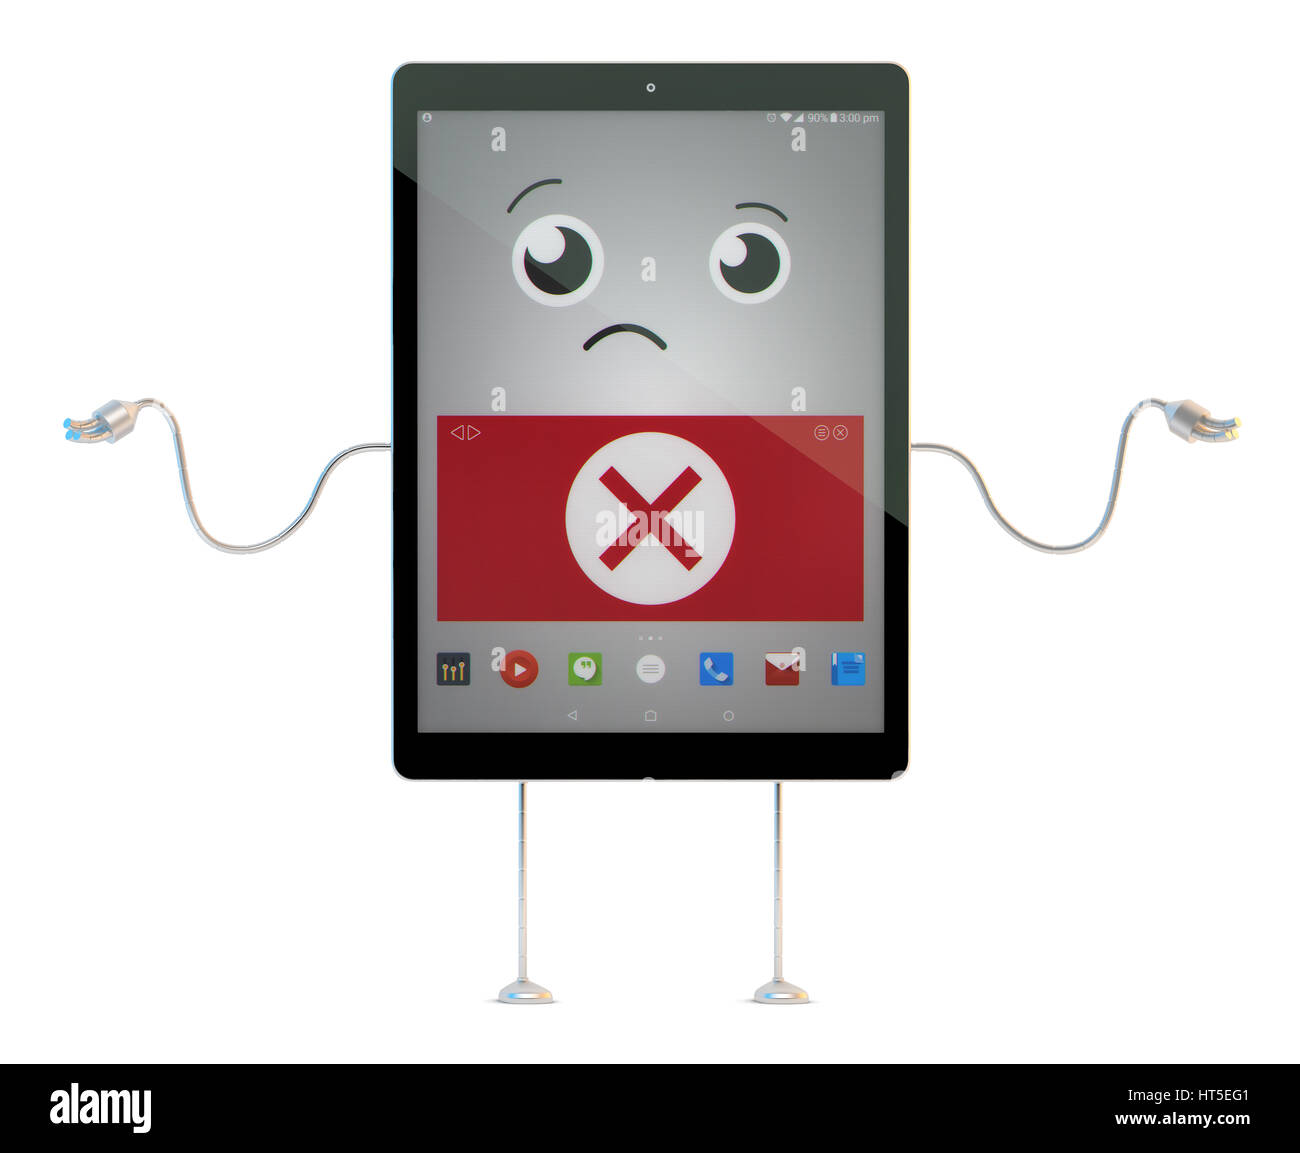 Worried Cartoon Tablet character with Application Error sign. 3D illustration. Contains clipping path. - Stock Image